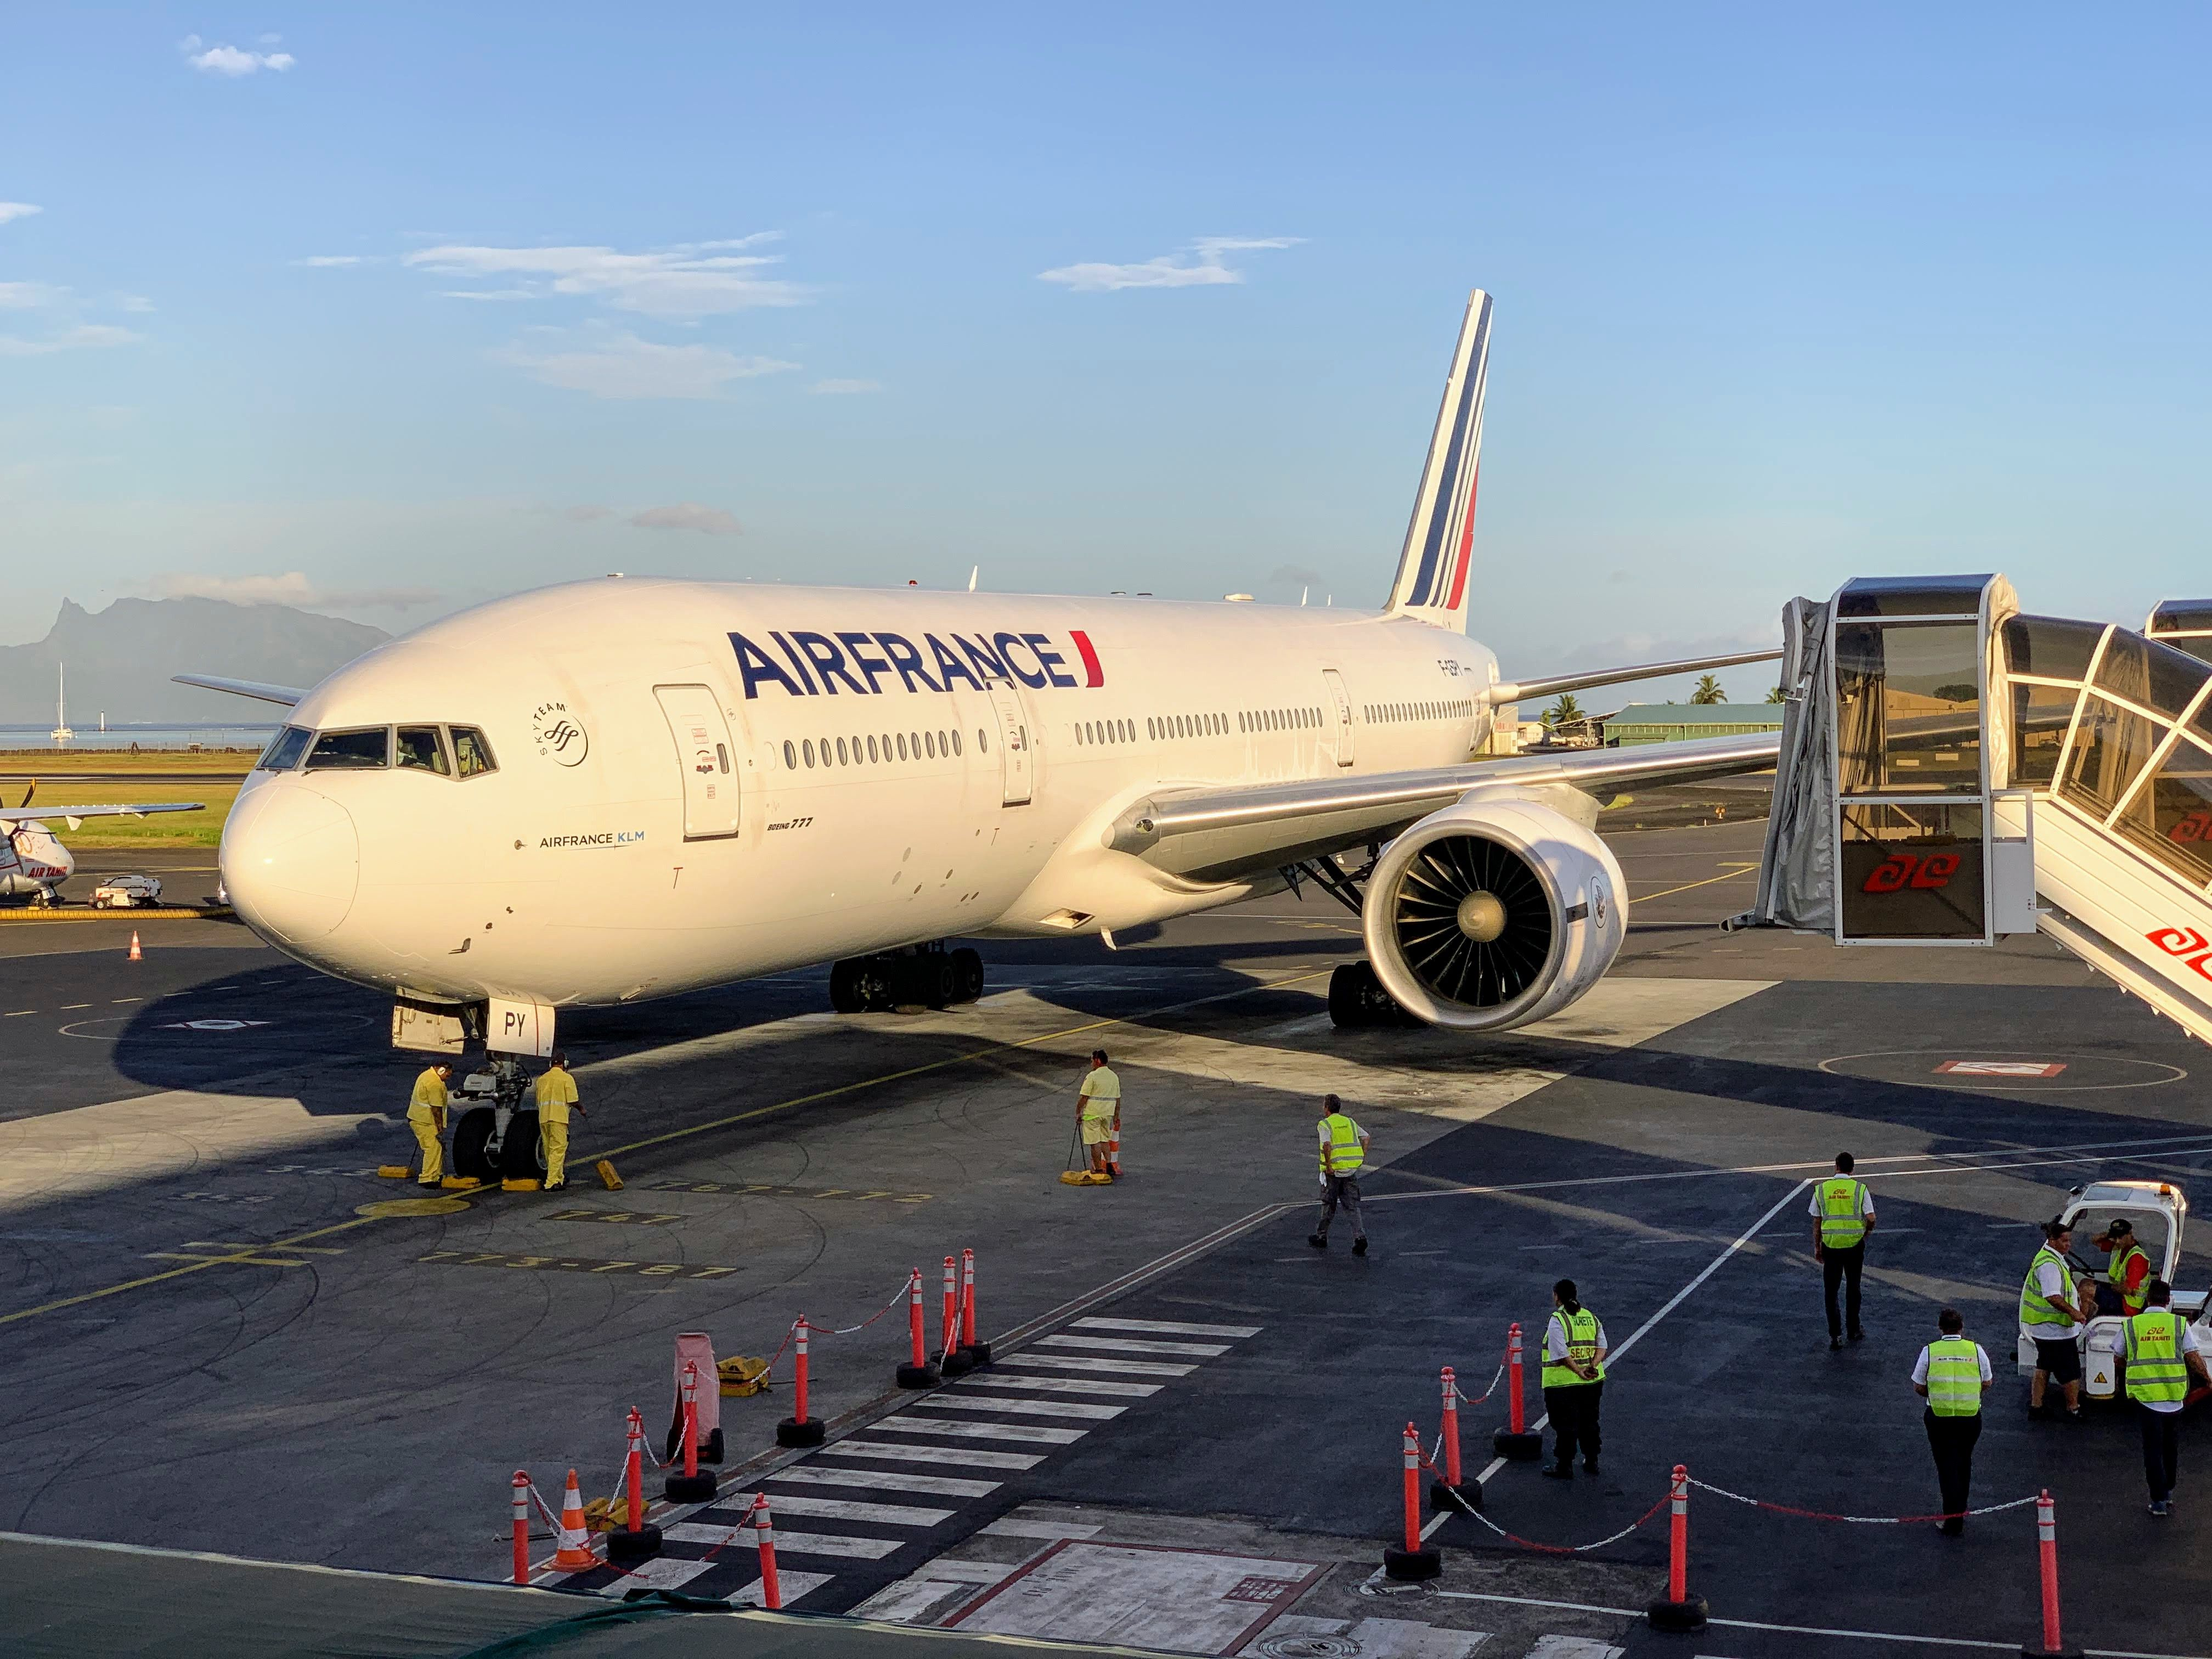 Review Air France (777200) in Business From PPT to LAX